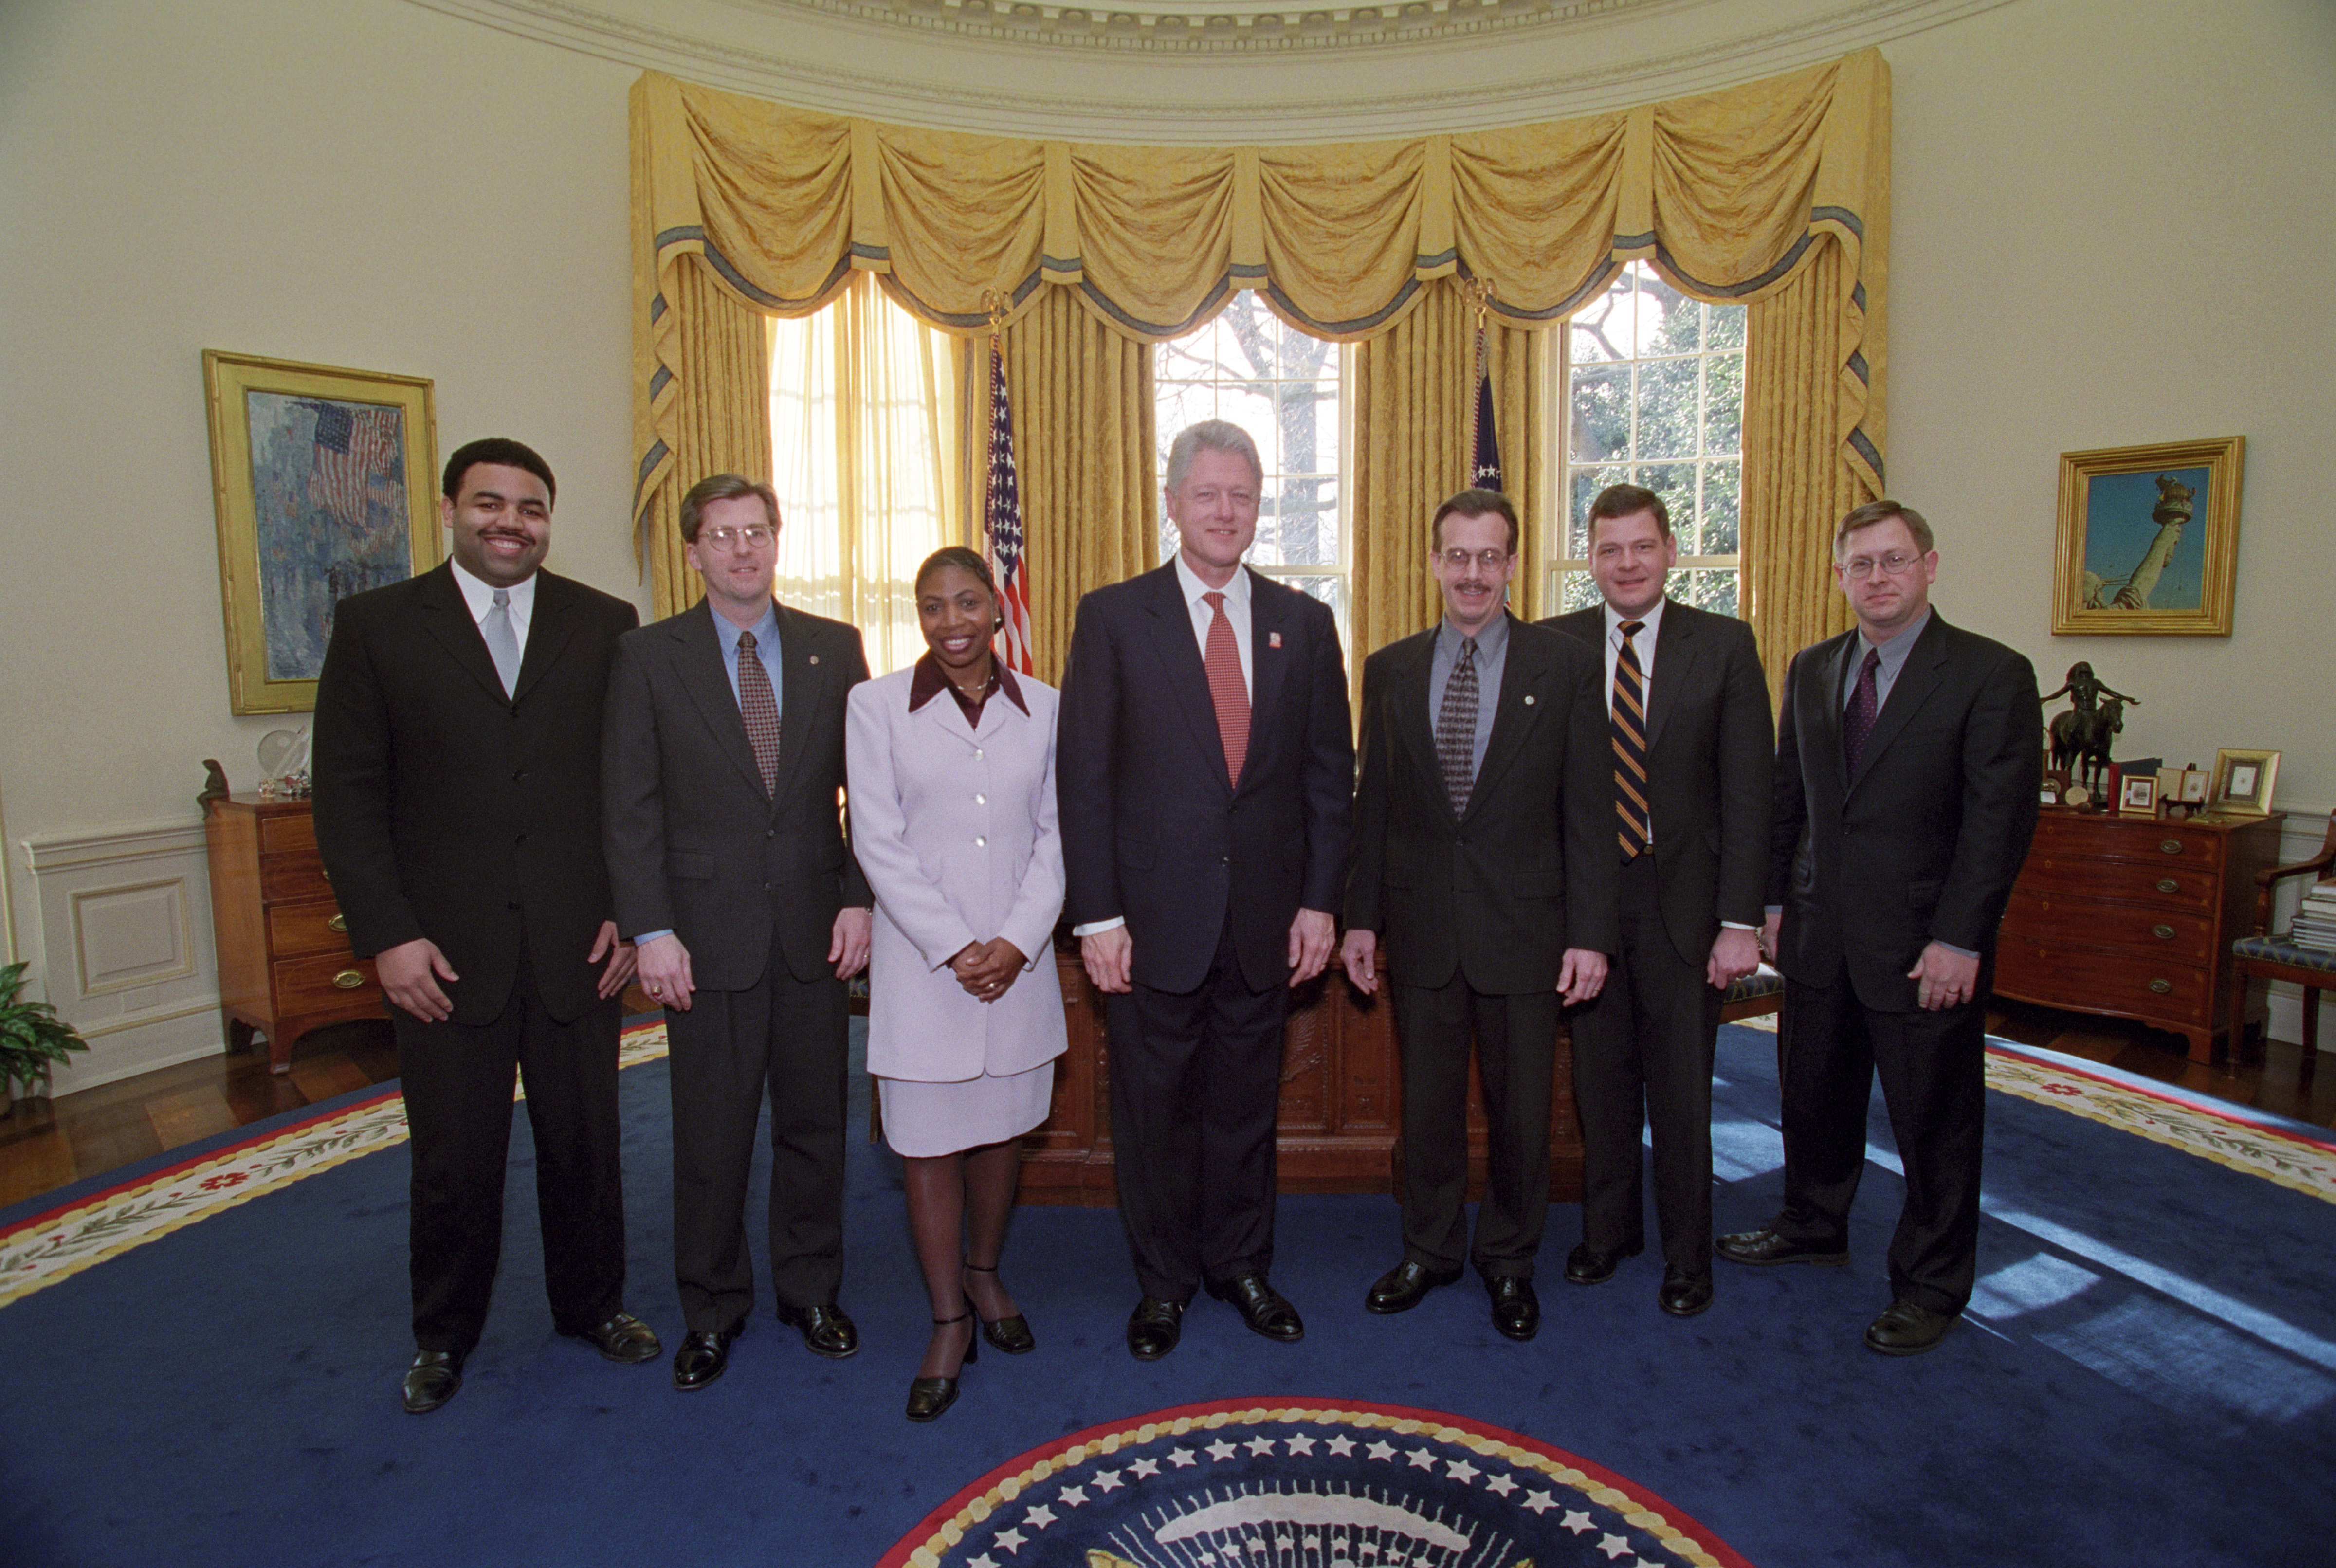 President Clinton joins the staff of the Clerk's Office for a group photo in the Oval Office